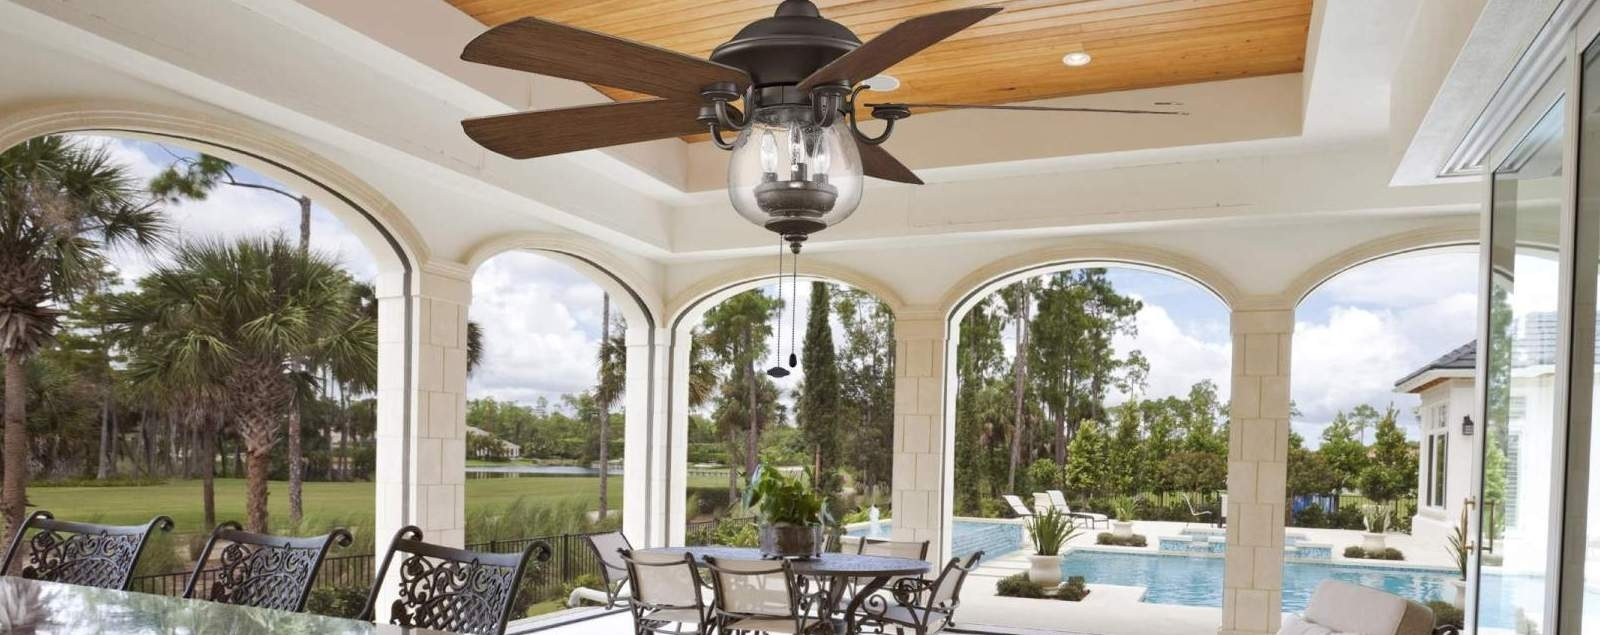 Outdoor Ceiling Fans – Shop Wet, Dry, And Damp Rated Outdoor Fans Throughout Most Recent Outdoor Porch Ceiling Fans With Lights (View 13 of 20)